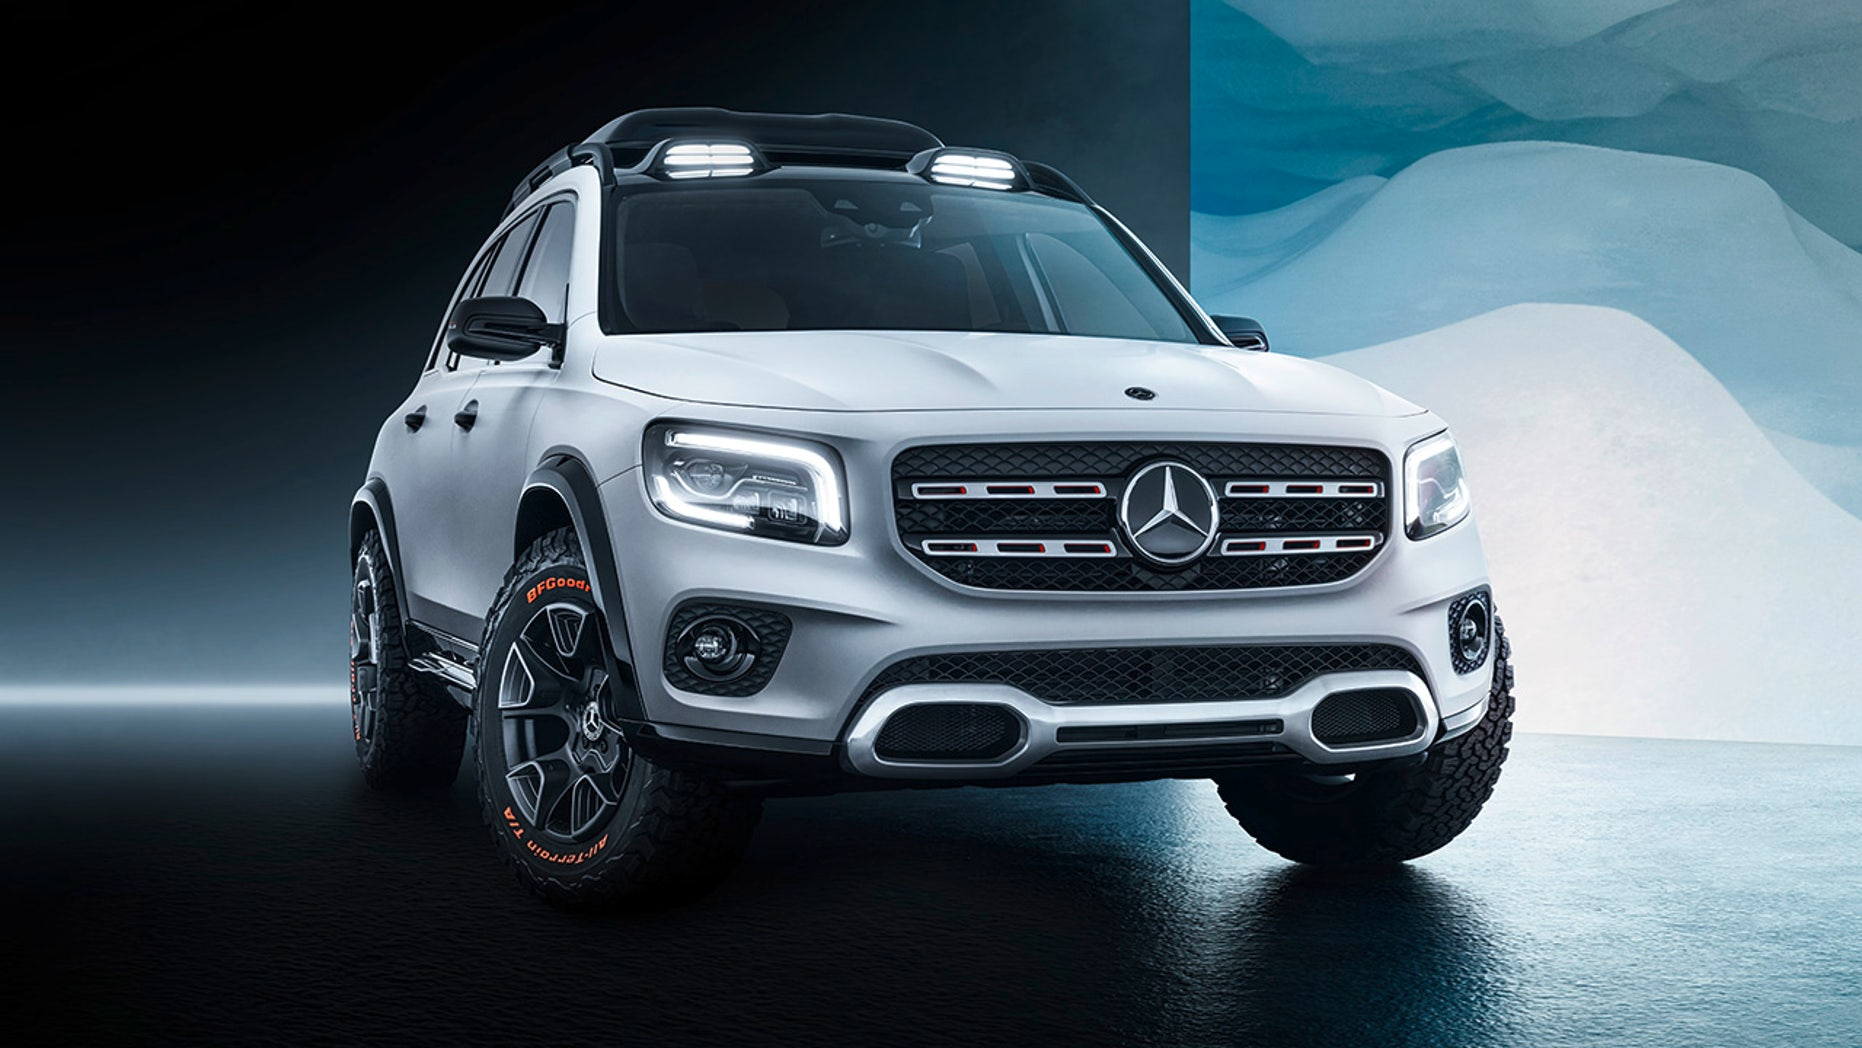 The Mercedes Benz Glb Suv Looks Ready To Get Down And